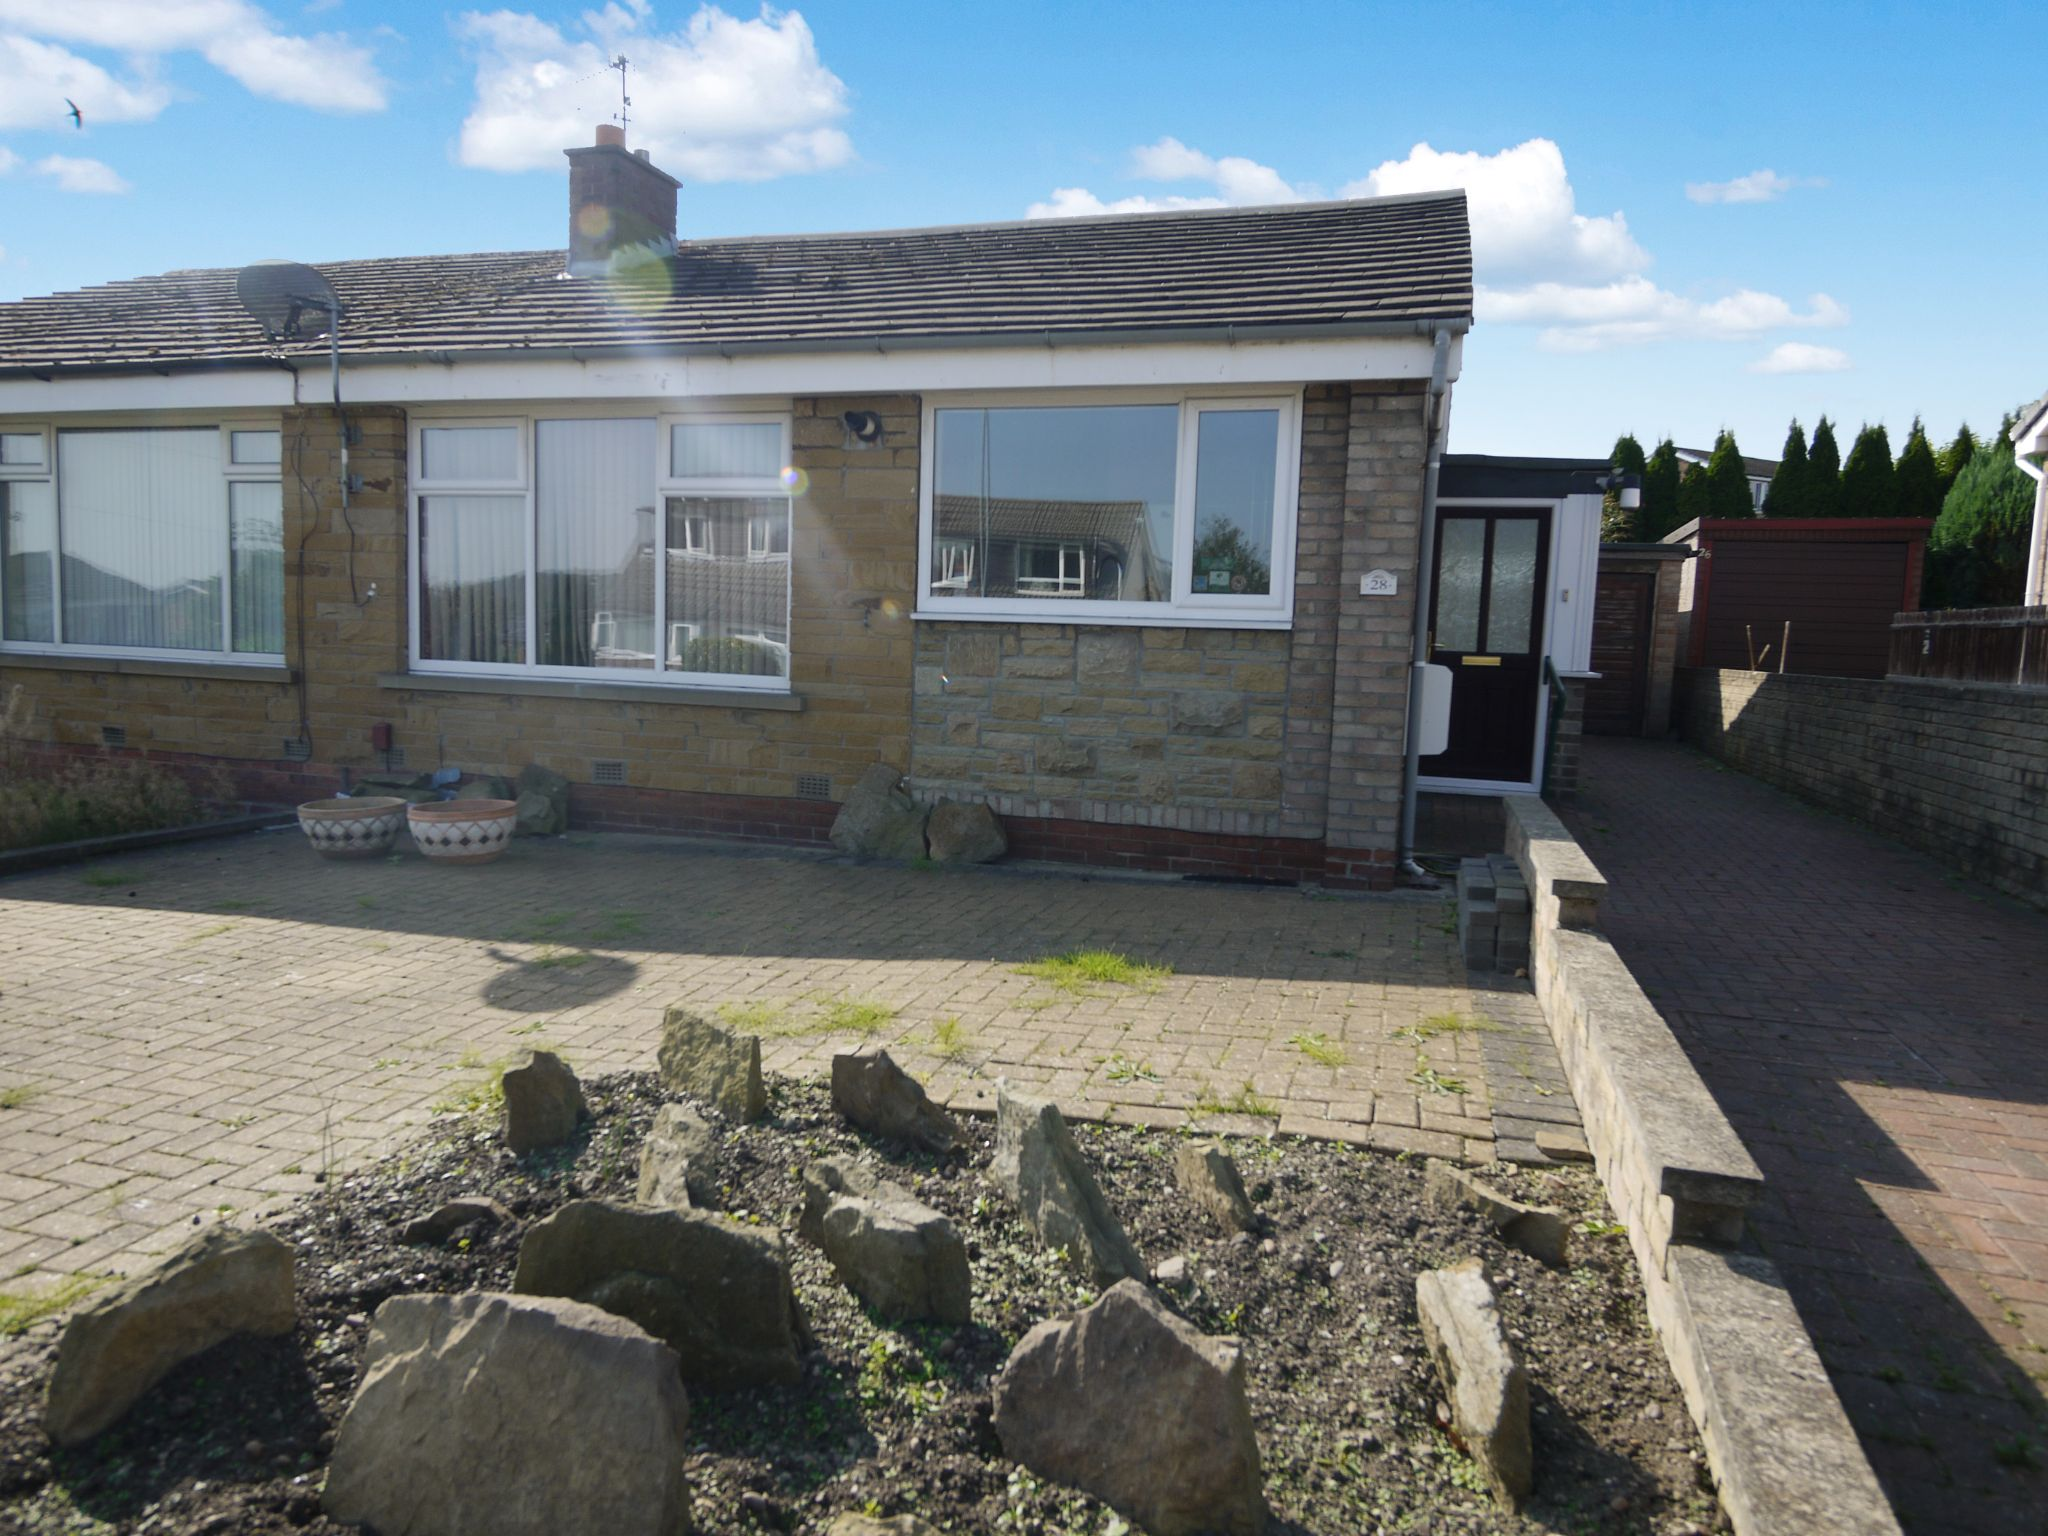 2 bedroom semi-detached bungalow SSTC in Brighouse - Main.